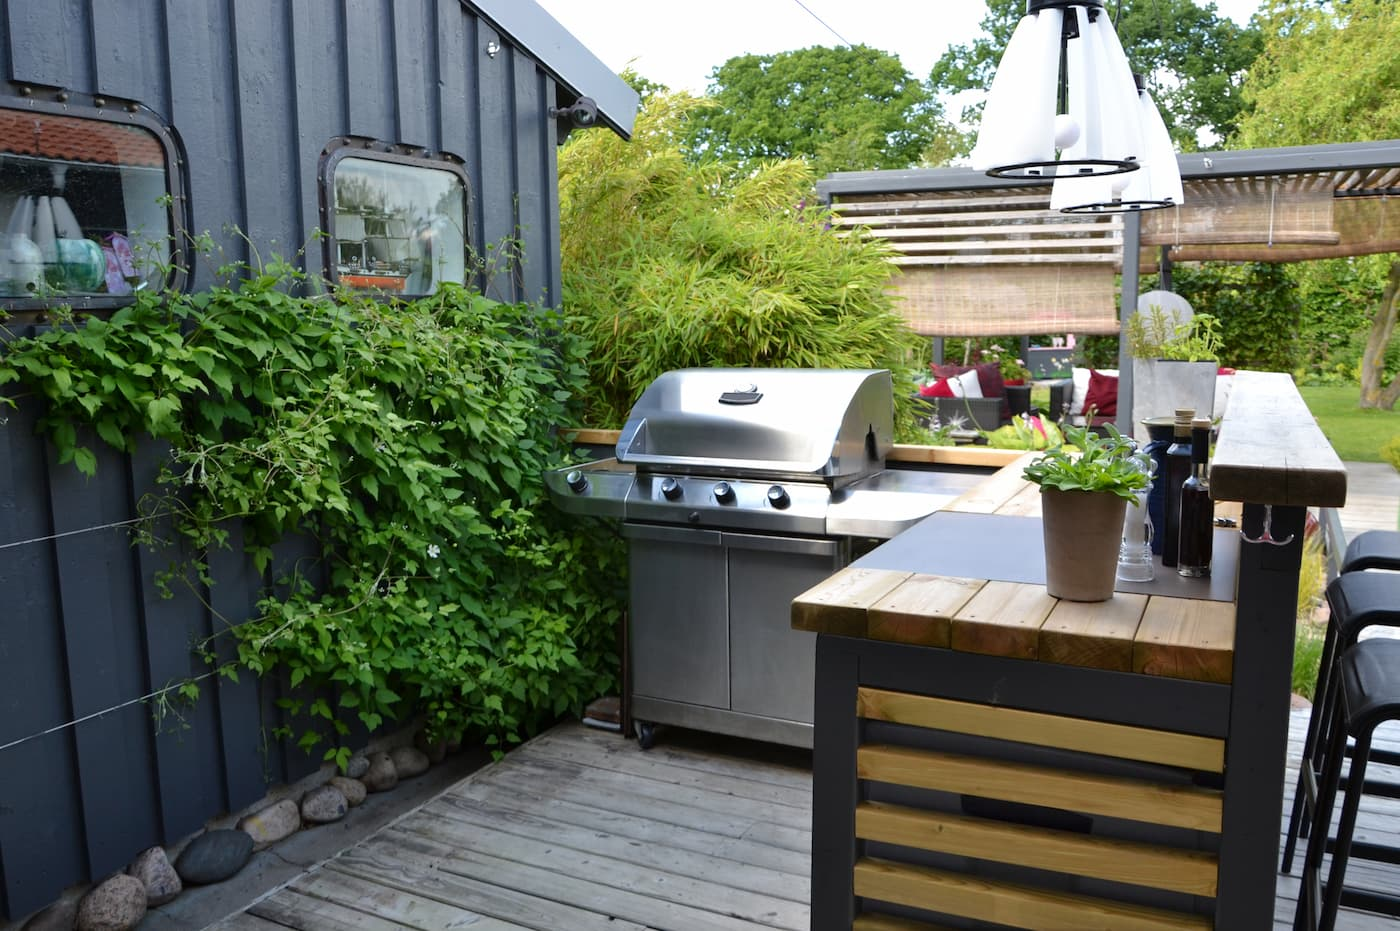 build an outdoor kitchen in your rental property